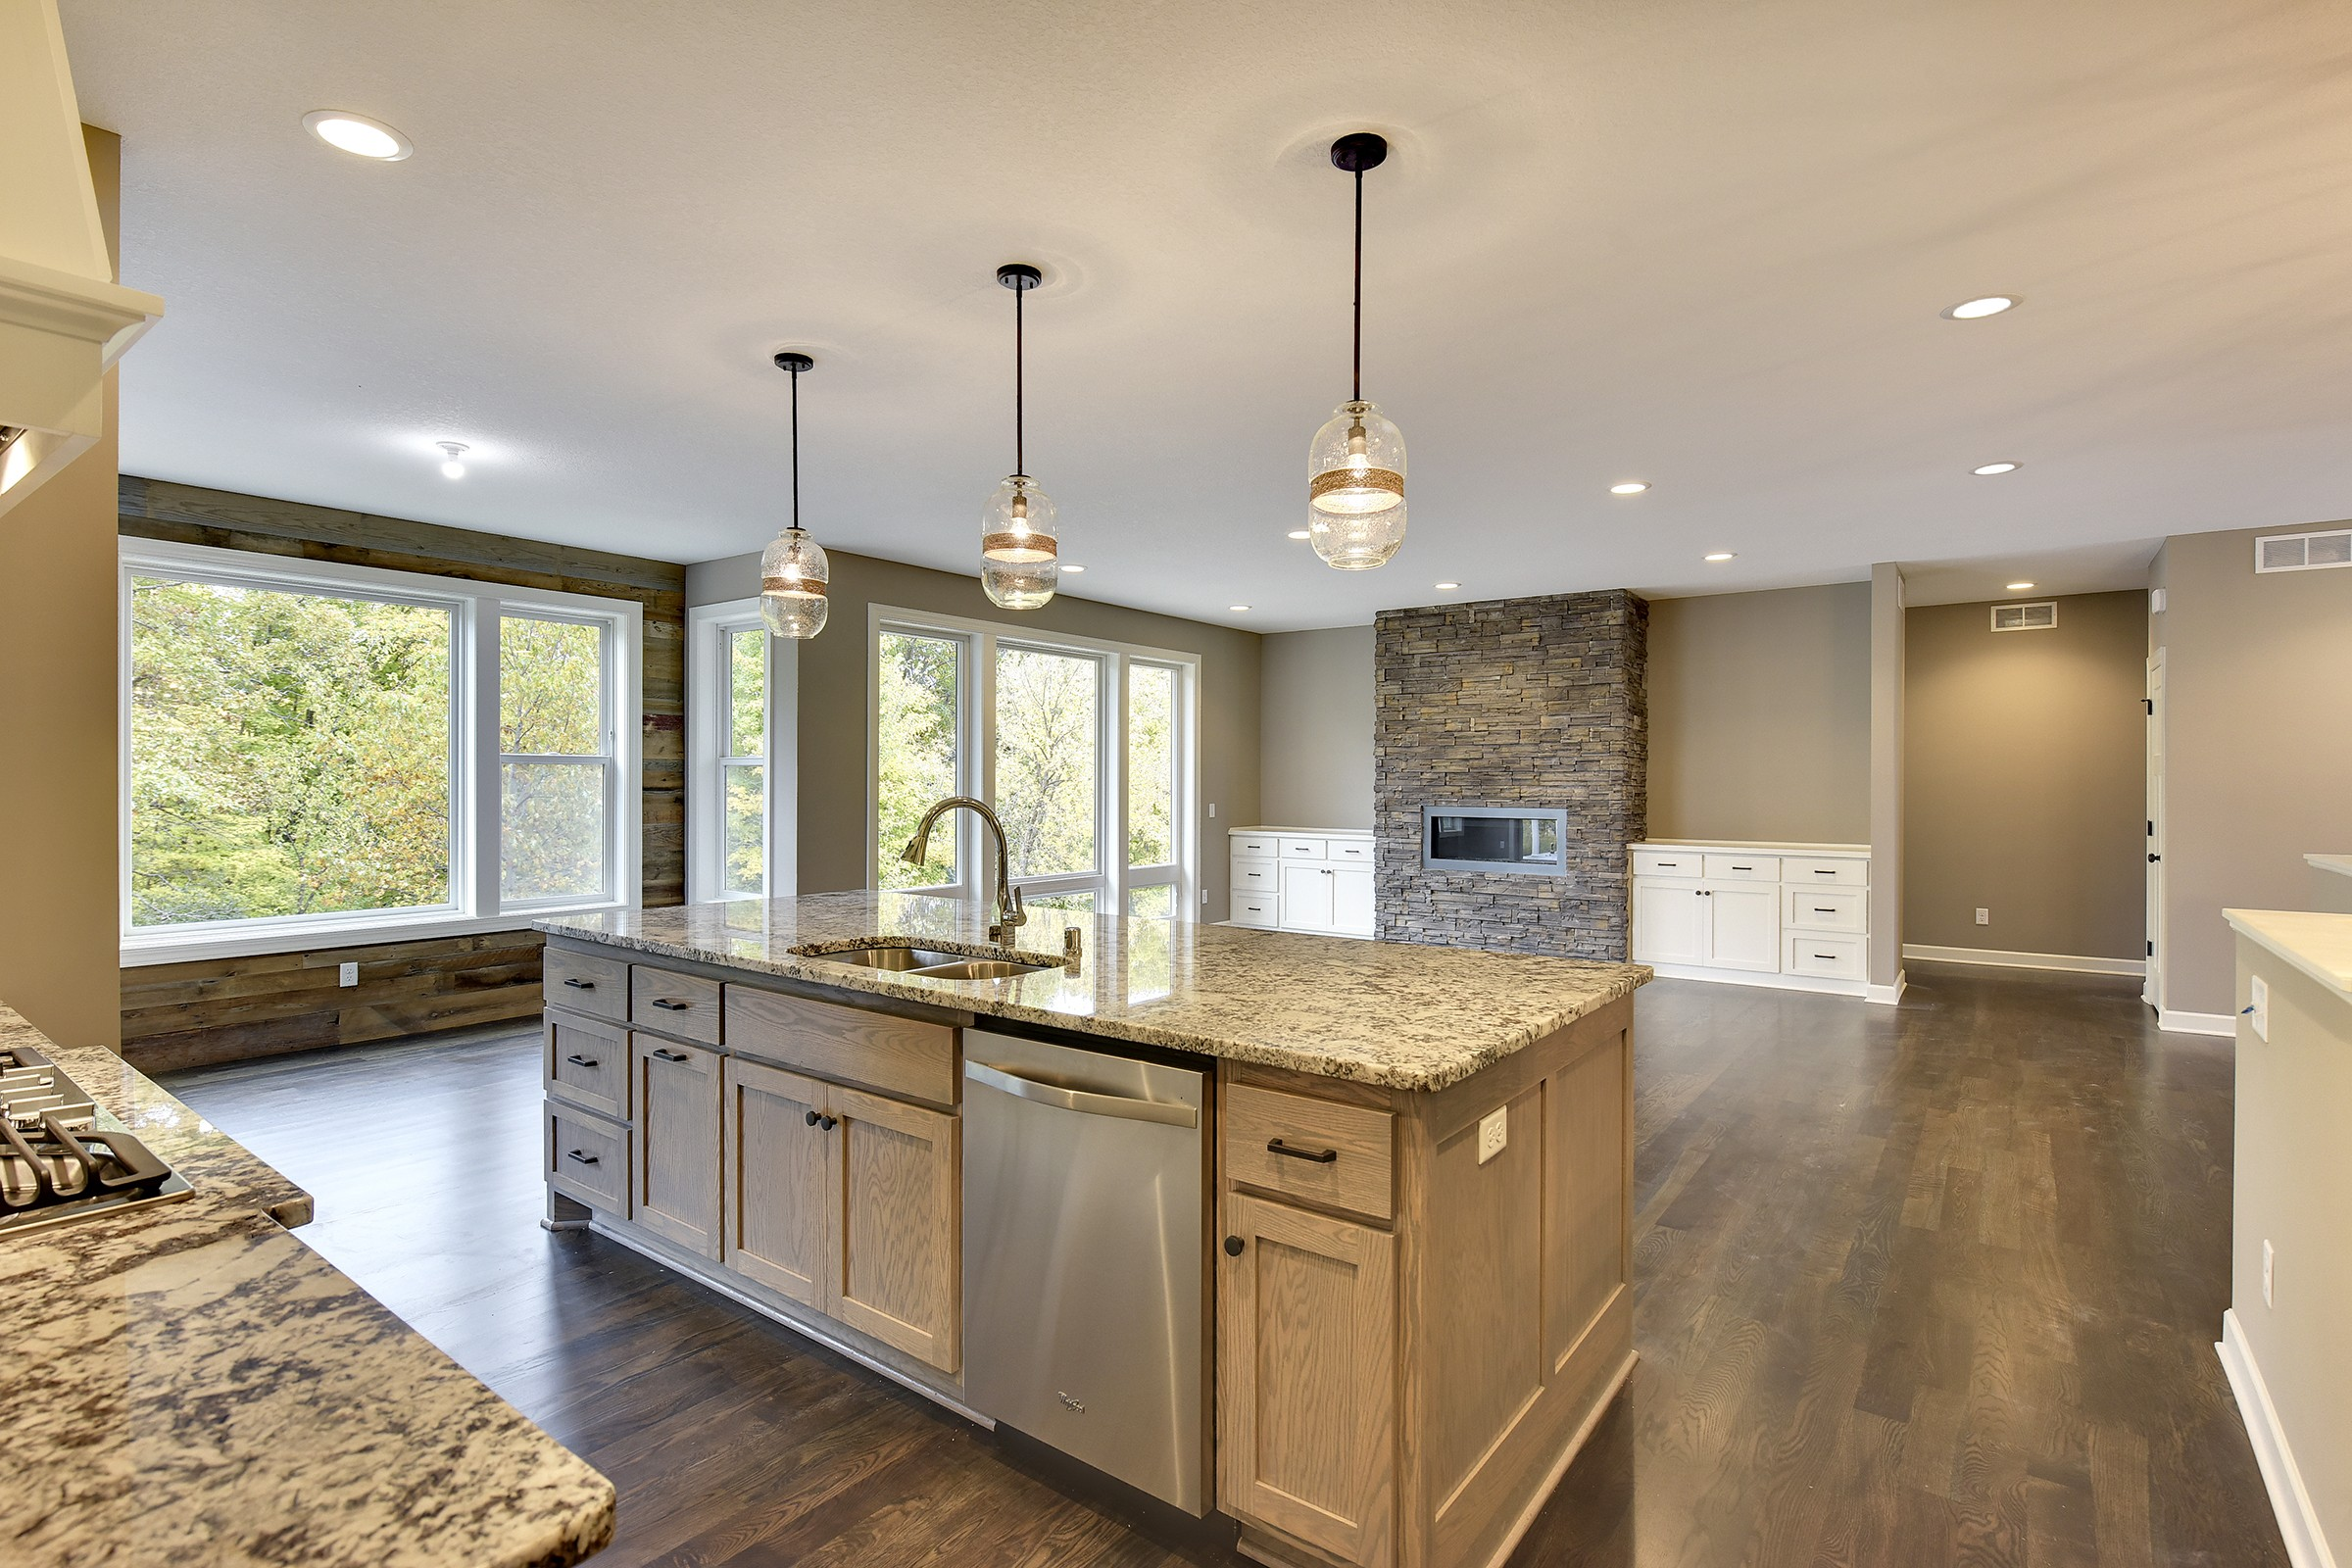 3615 Cavallo Pass   Click on image for a complete gallery for this home.